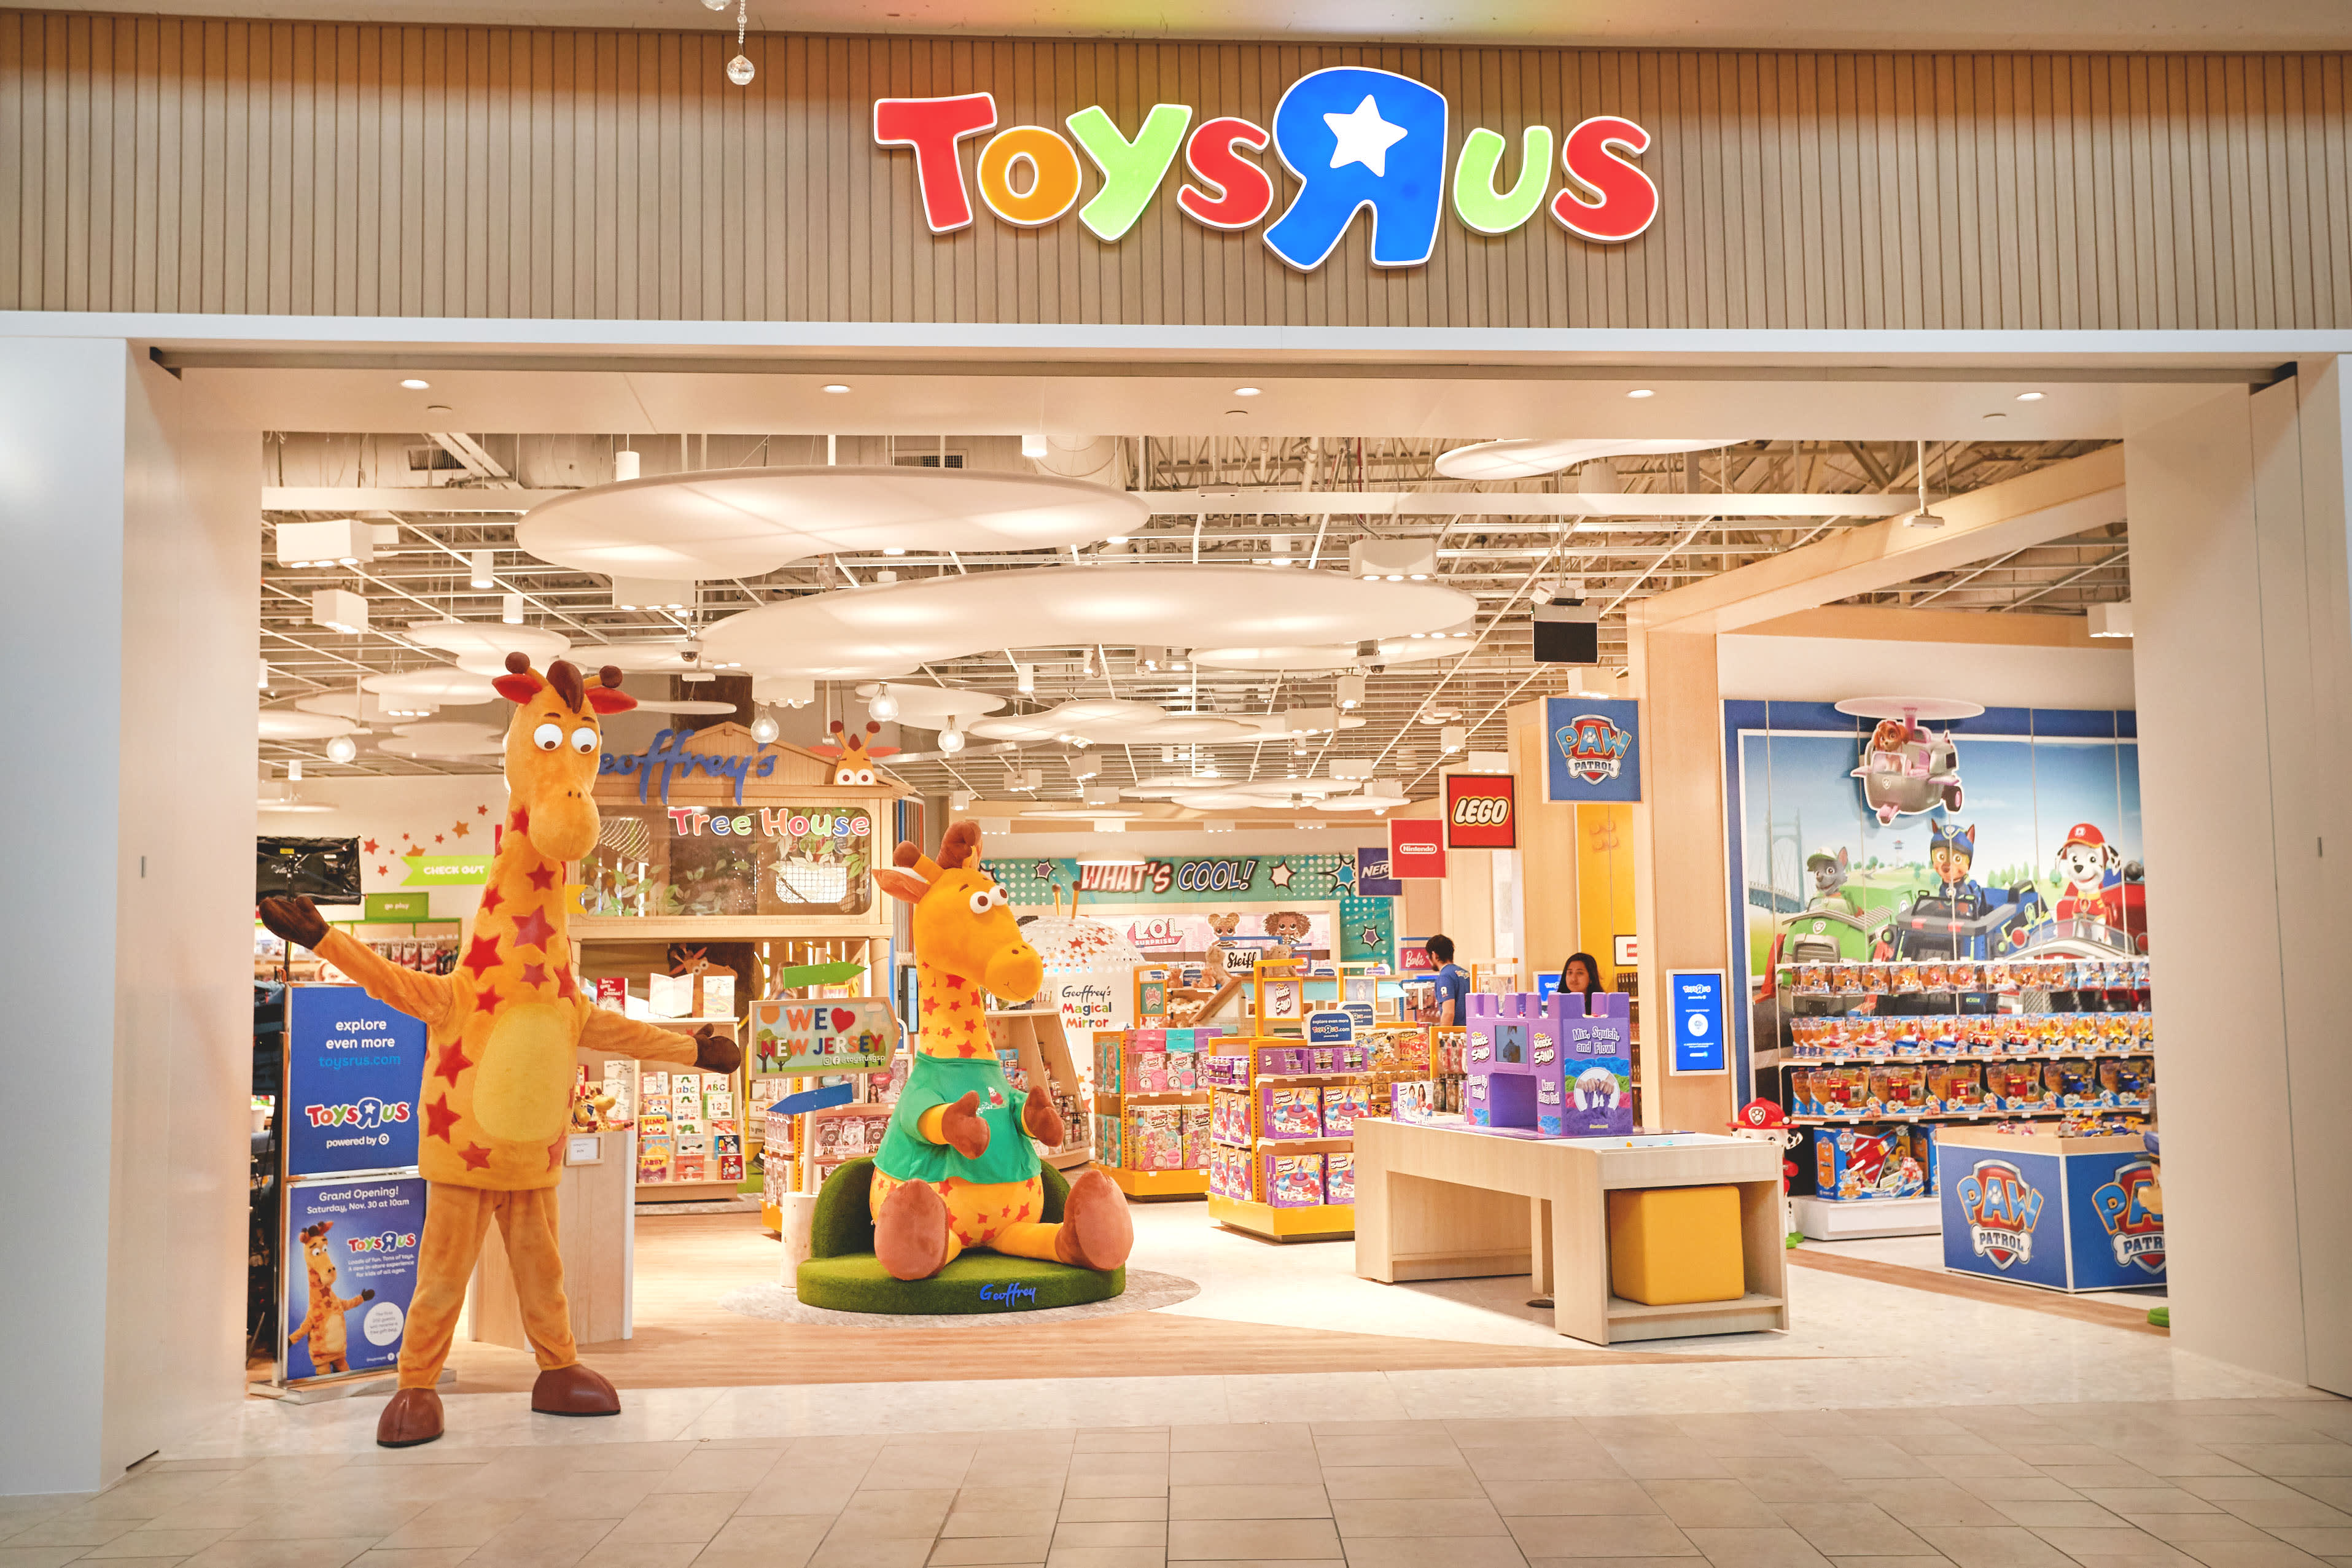 Toys R Us' last two stores in the U.S. are reportedly closed for good